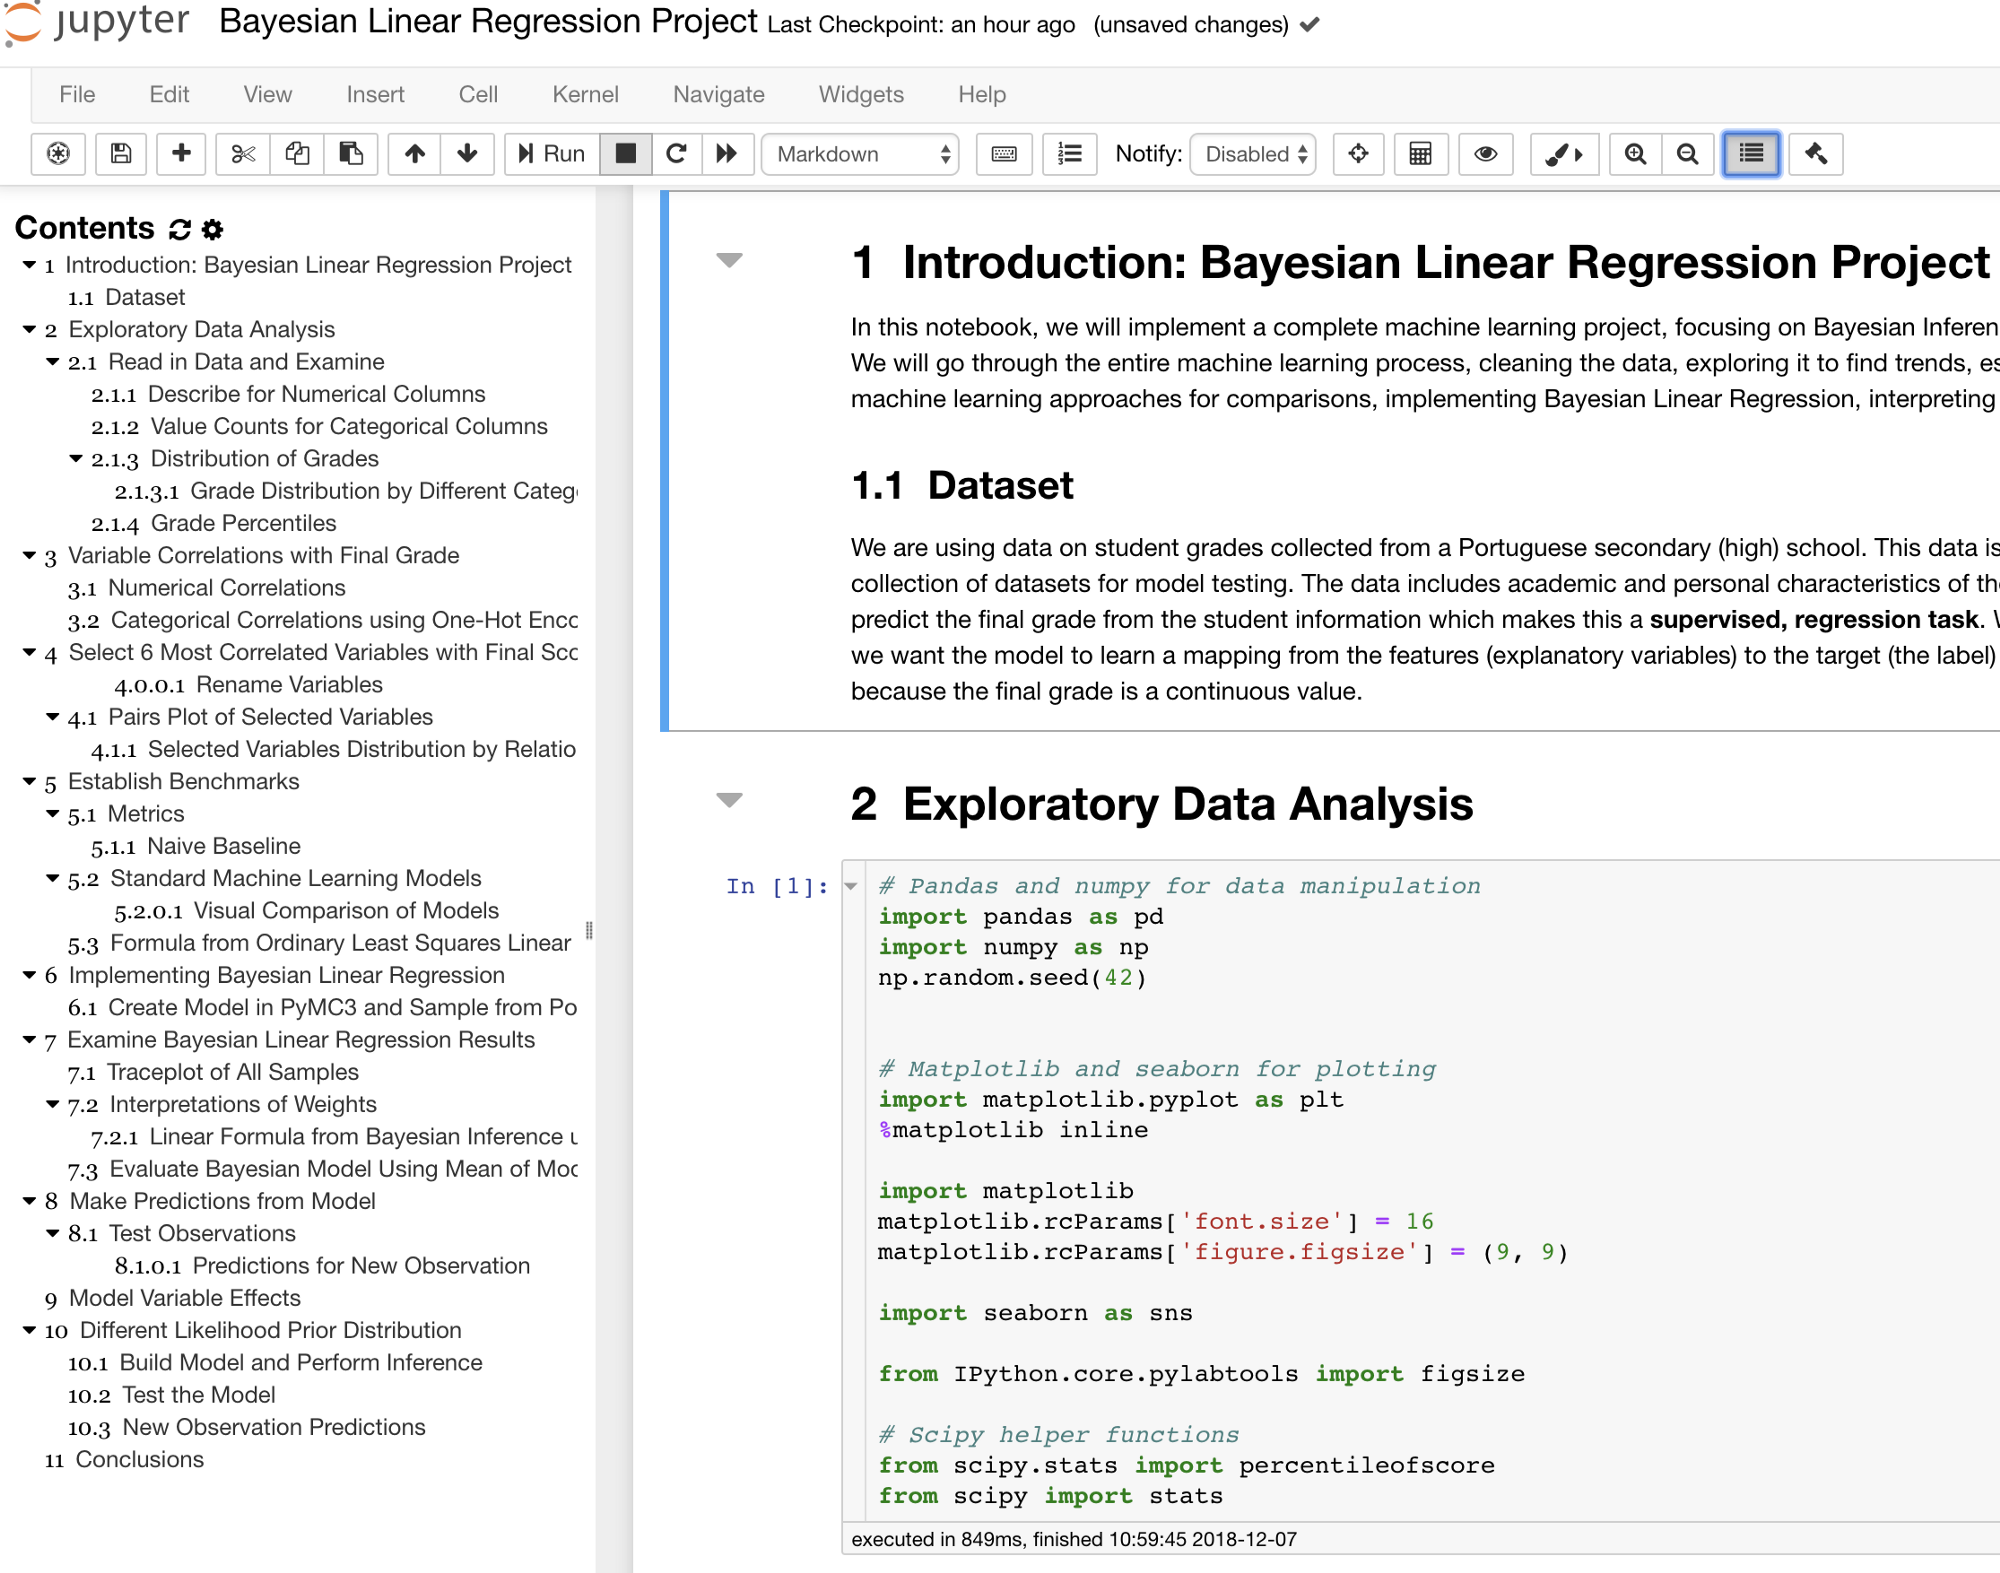 Jupyter Notebook Extensions - Towards Data Science